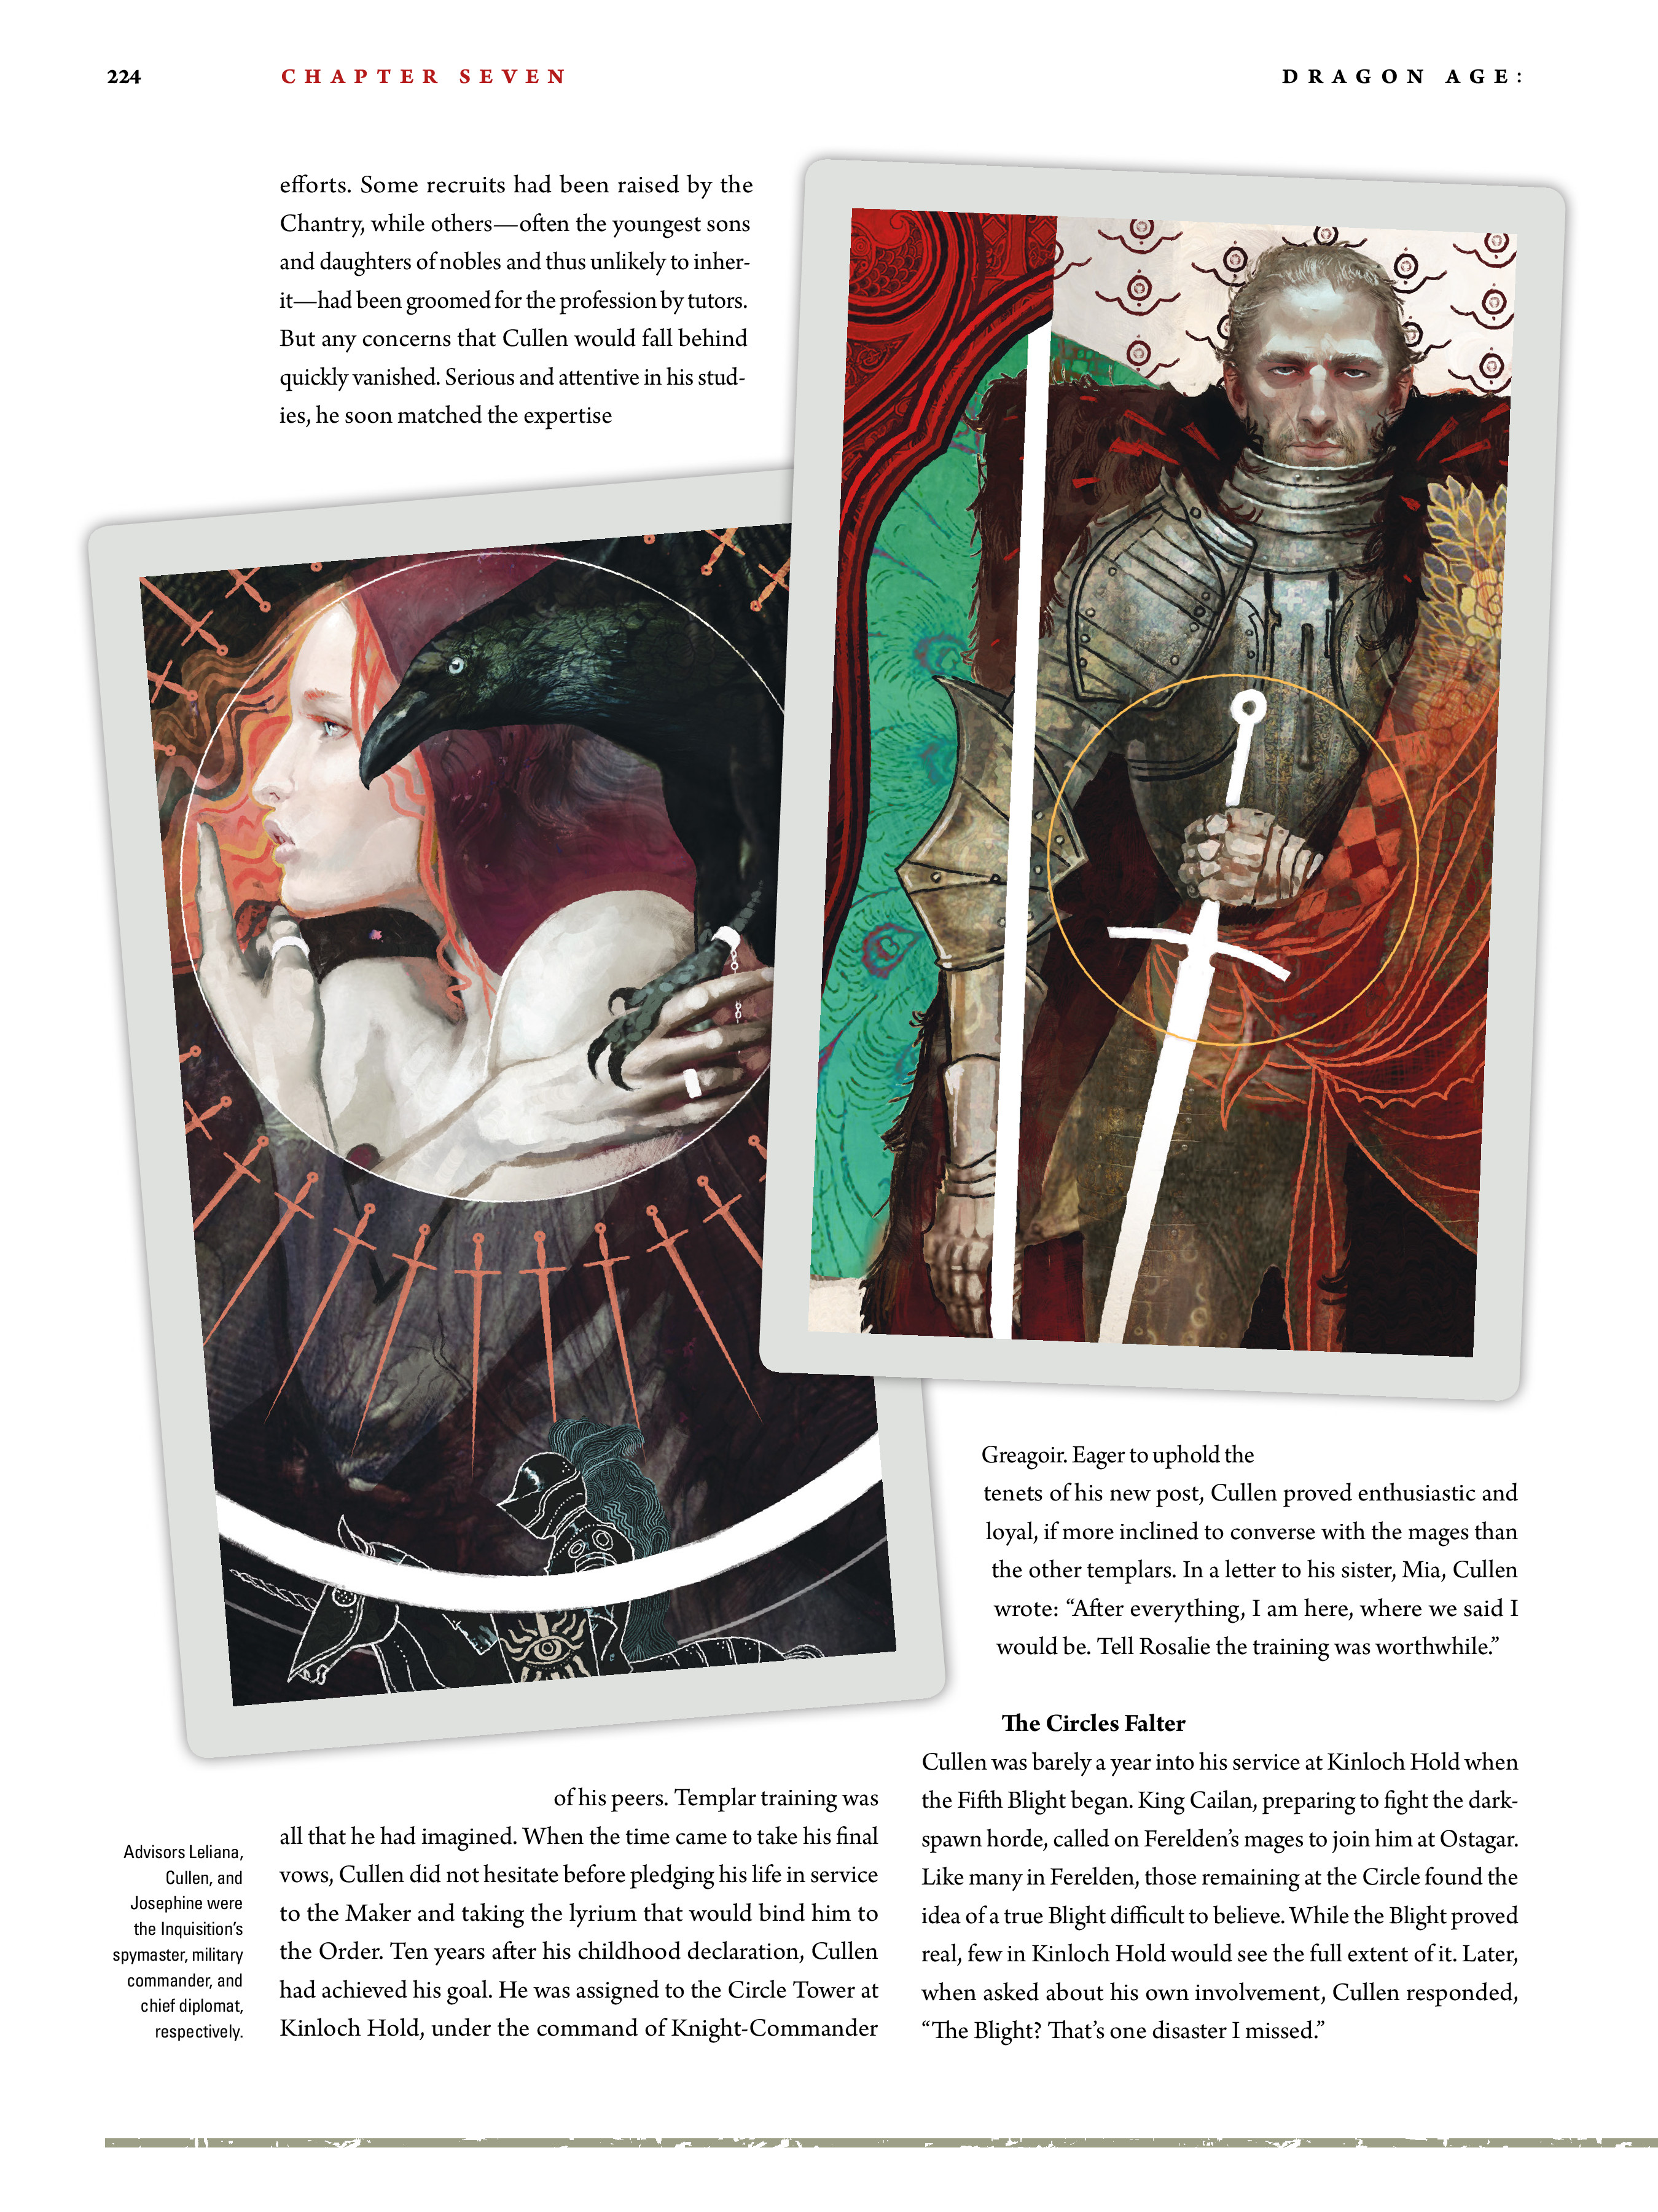 Read online Dragon Age: The World of Thedas comic -  Issue # TPB 2 - 219